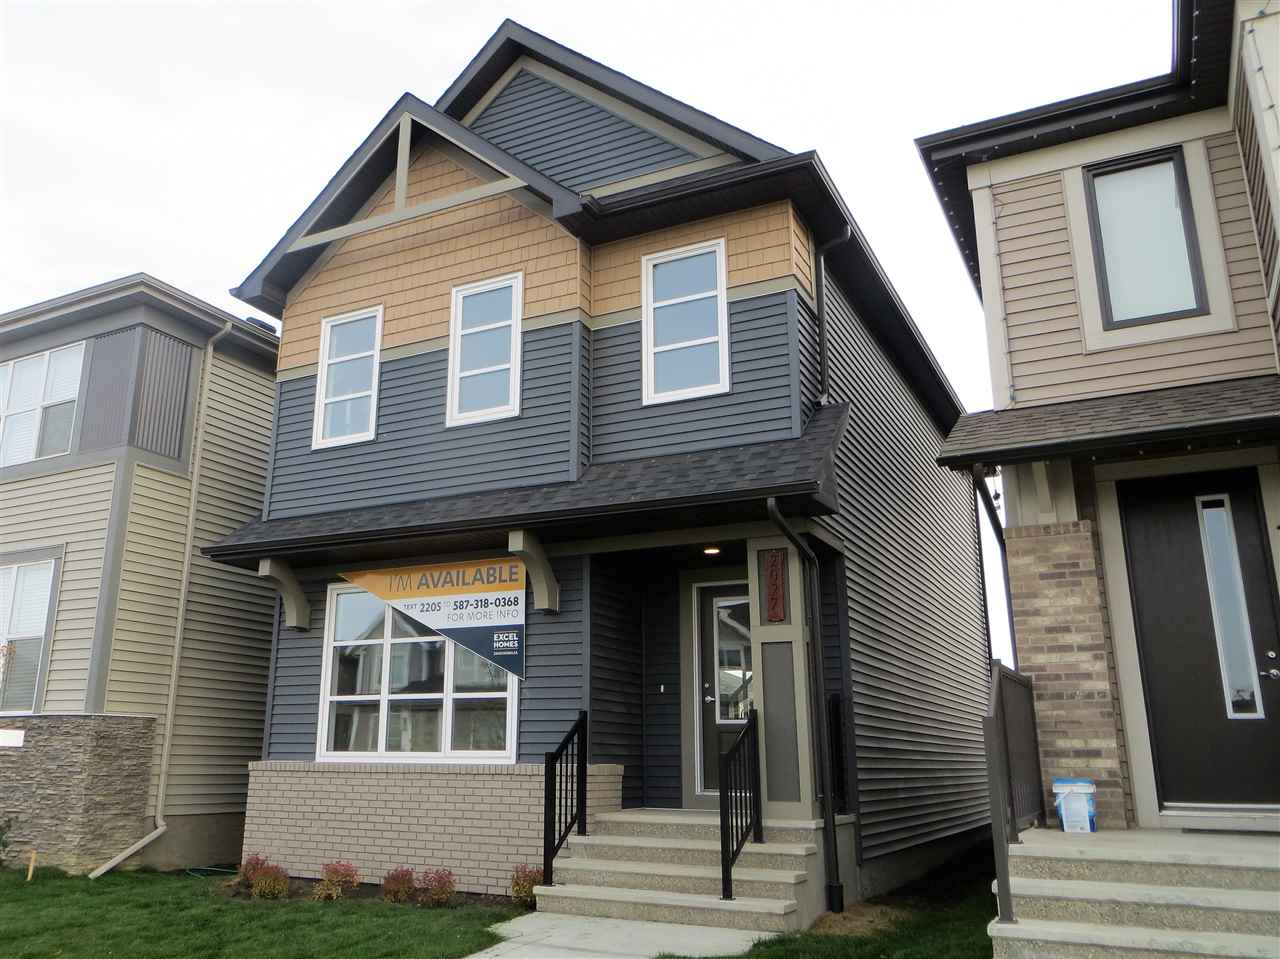 New 1420 square foot home with immediate possession!  9 foot ceilings on the main welcomes you into this upgraded home. The kitchen features Ash cabinetry with dark stain, pot and pans drawers, engineered stone counters of course, pot lights pantry, crown moulding and nicely equipped with stainless steel appliances.  Main floor features warm grey laminate floors, tile flooring and gas fireplace. The upper level has 3 bedrooms including the master bedroom with walk in closet and full ensuite. Laundry area is also on the upper level for added convenience. Landscaping includes sod in front yard, back yard includes topsoil and concrete pad for parking plus gas line for bbq.